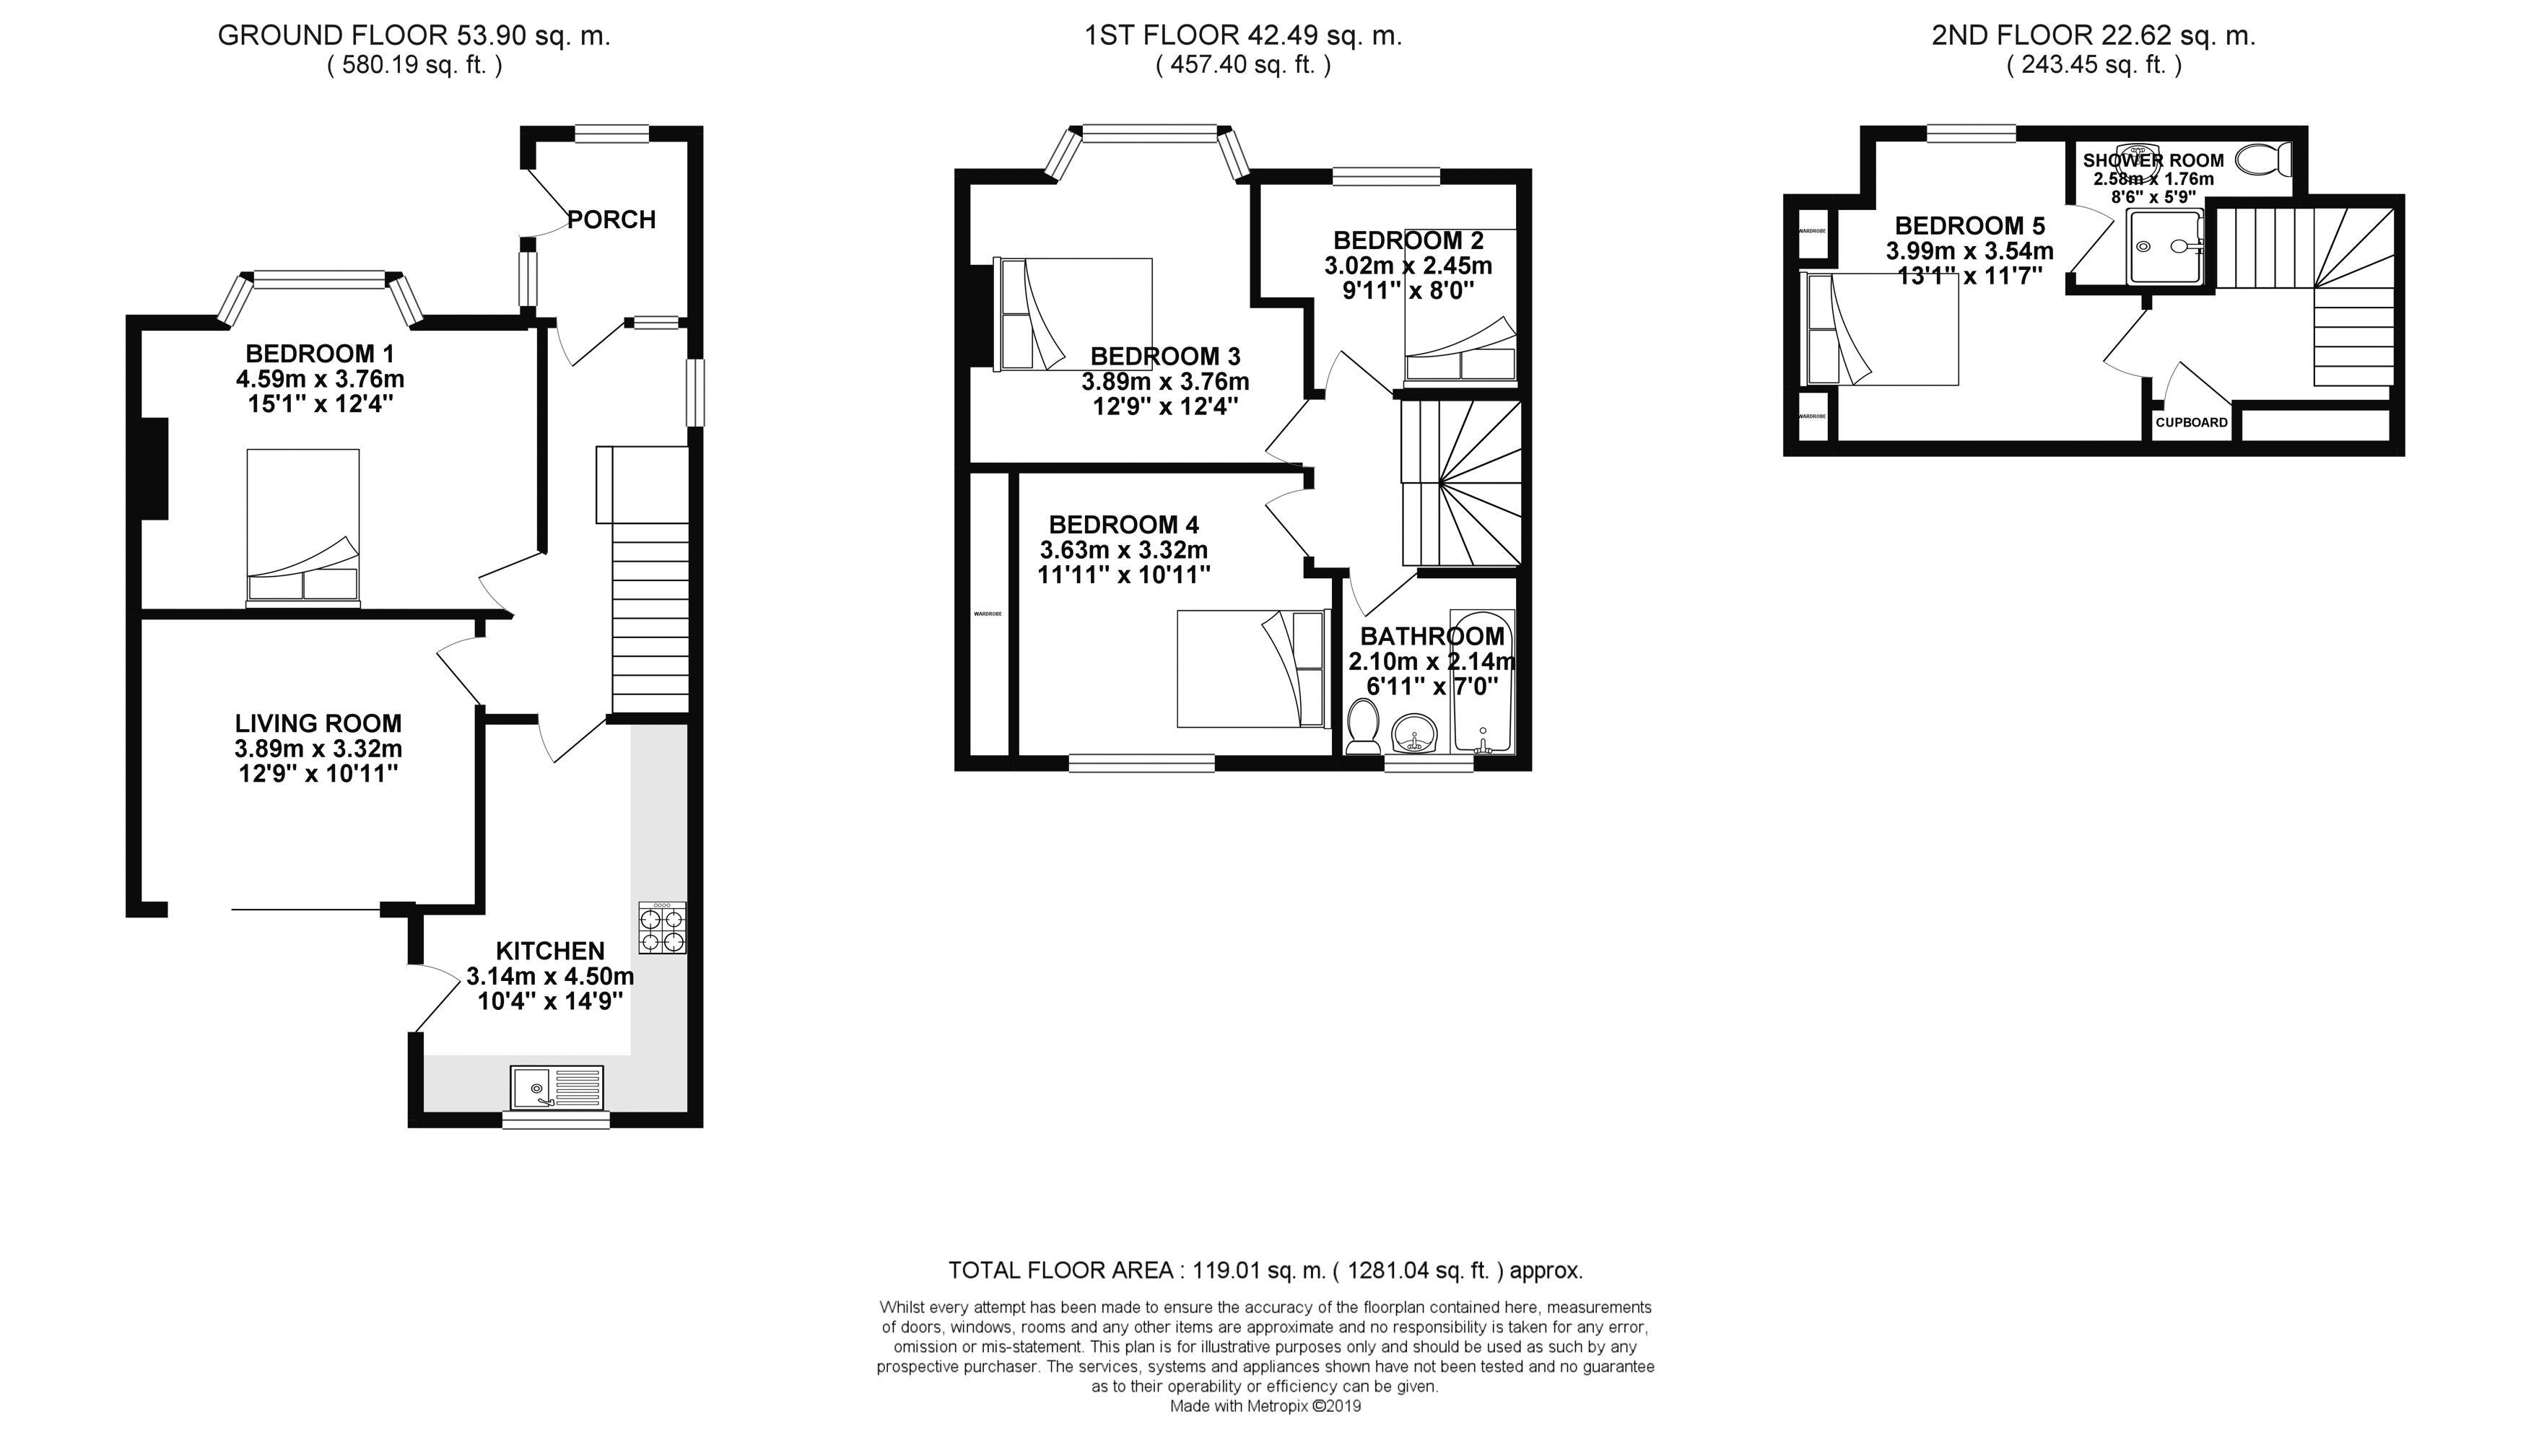 Floor plans for Medmerry Hill, Brighton property for sale in Moulsecoomb, Brighton by Coapt